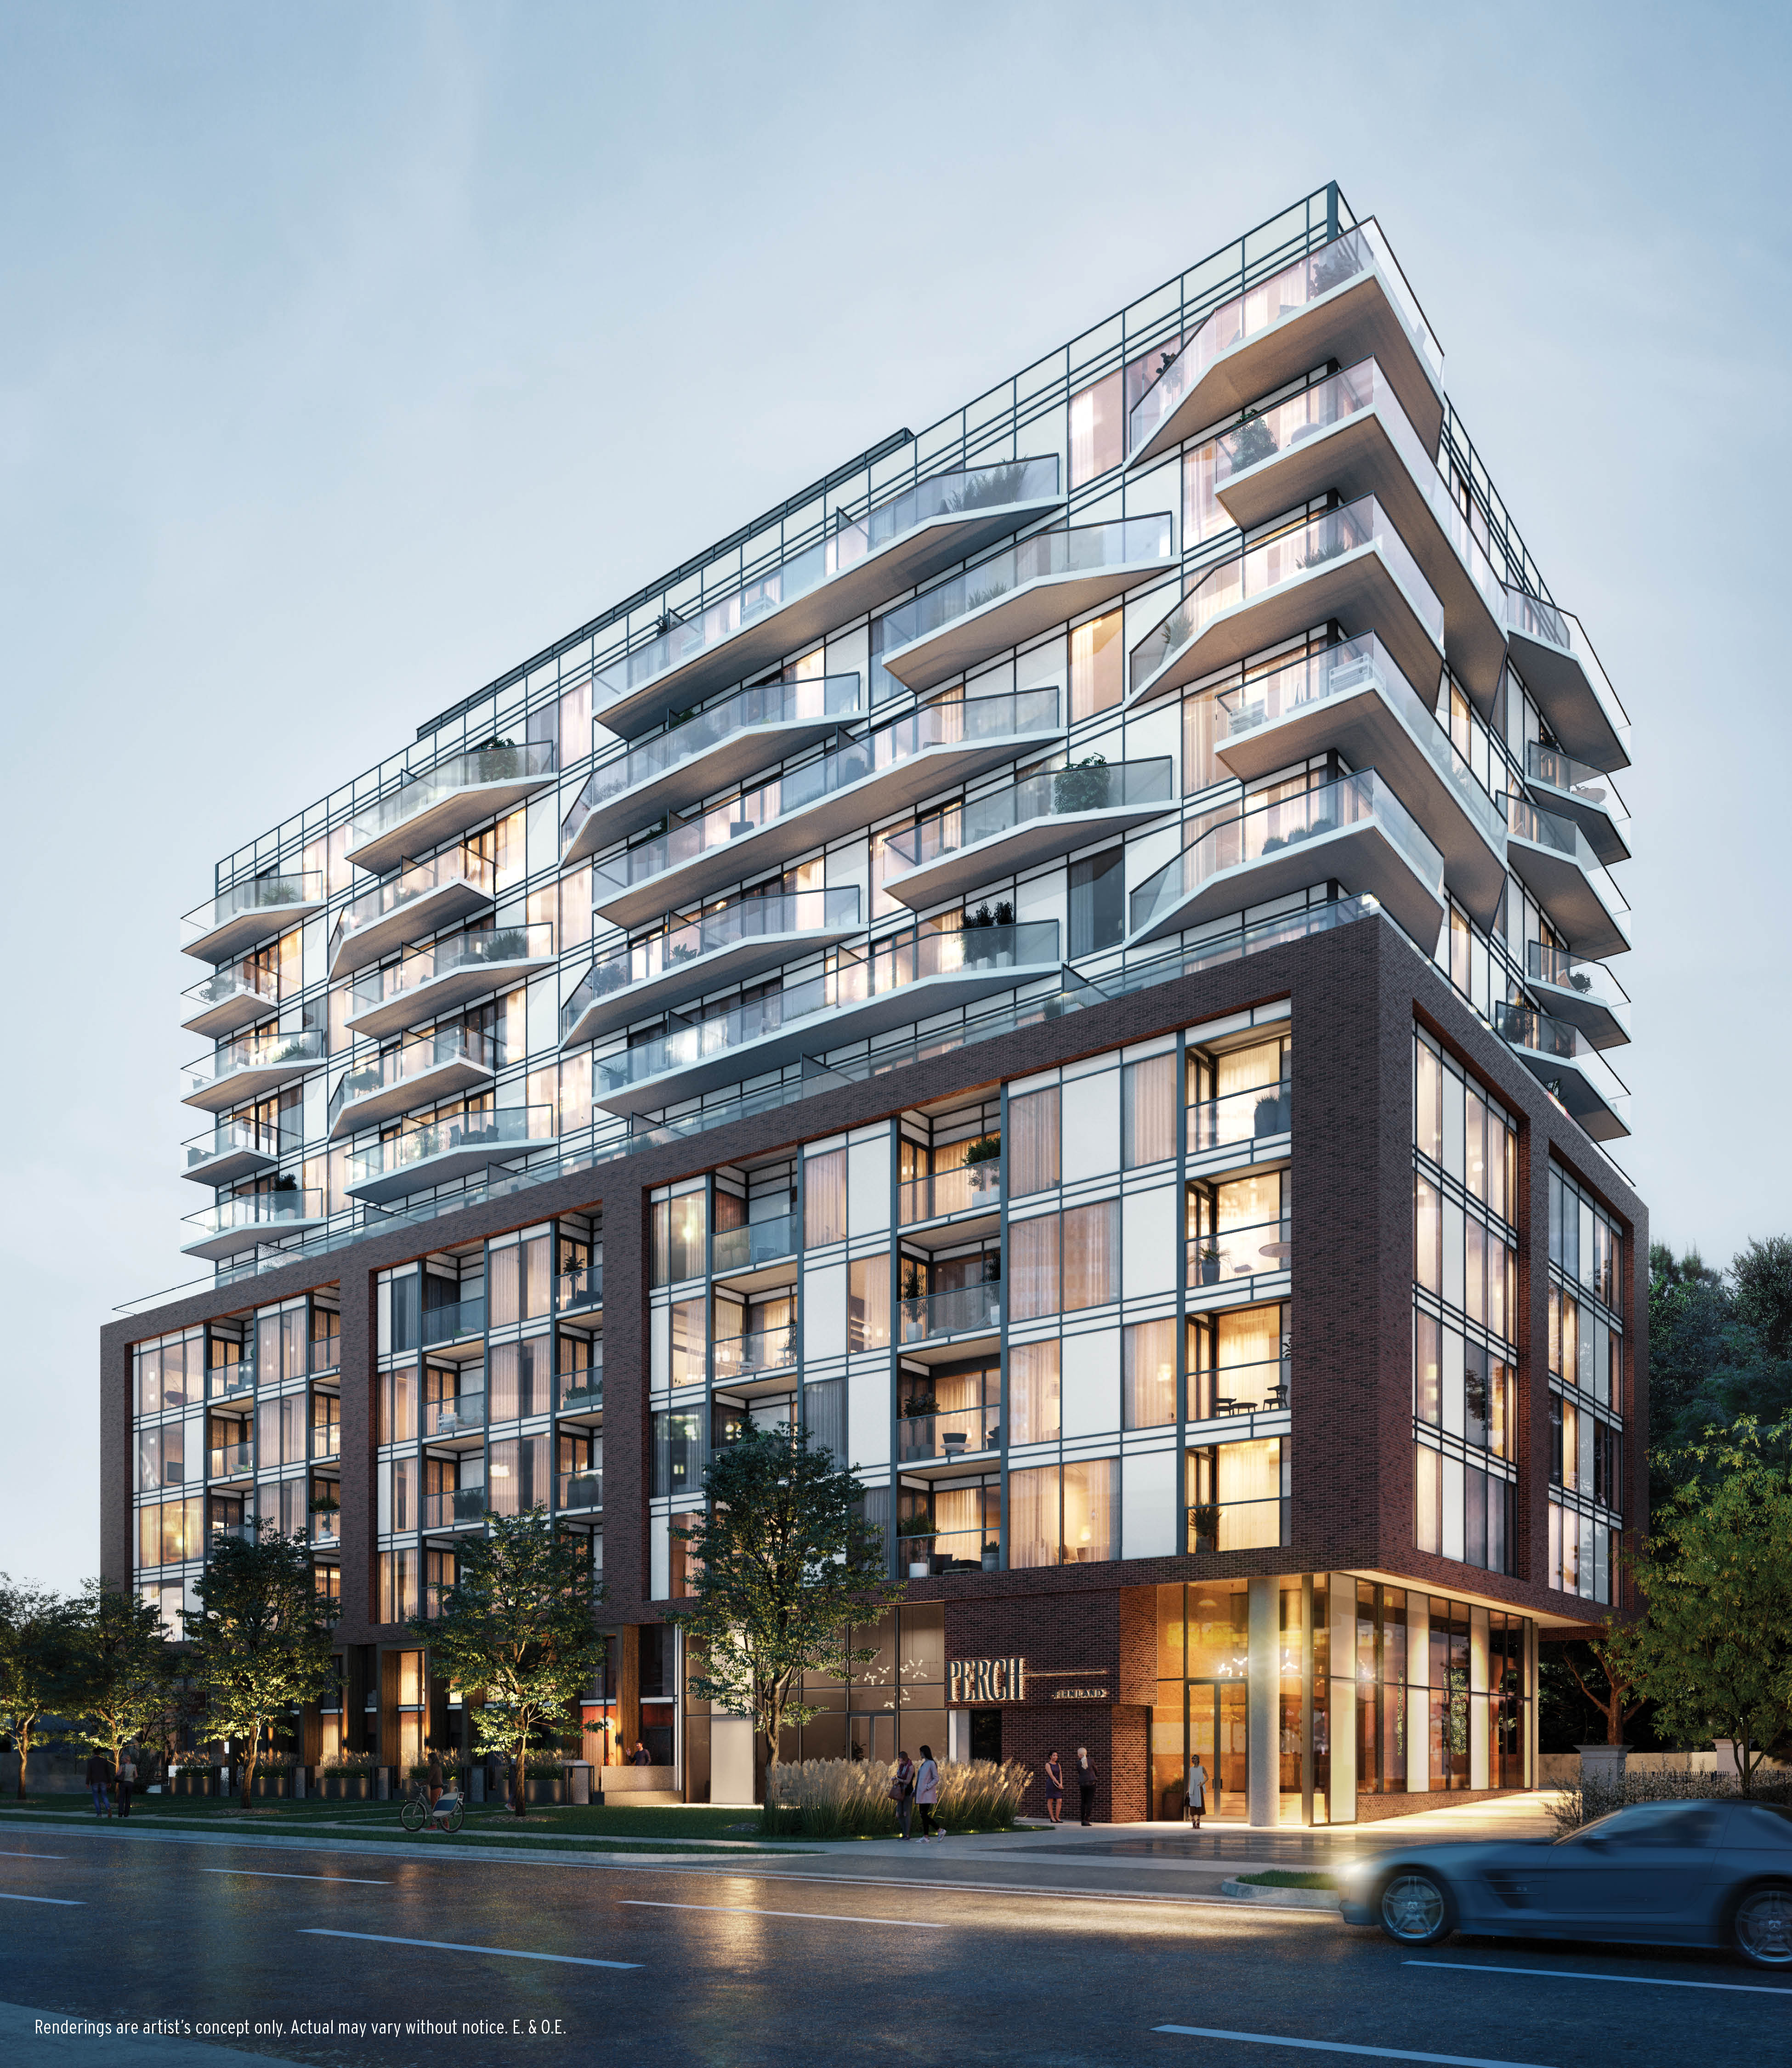 Perch Condominiums, Firmland Developments Corp., Core Architects, Cecconi Simone, Toronto